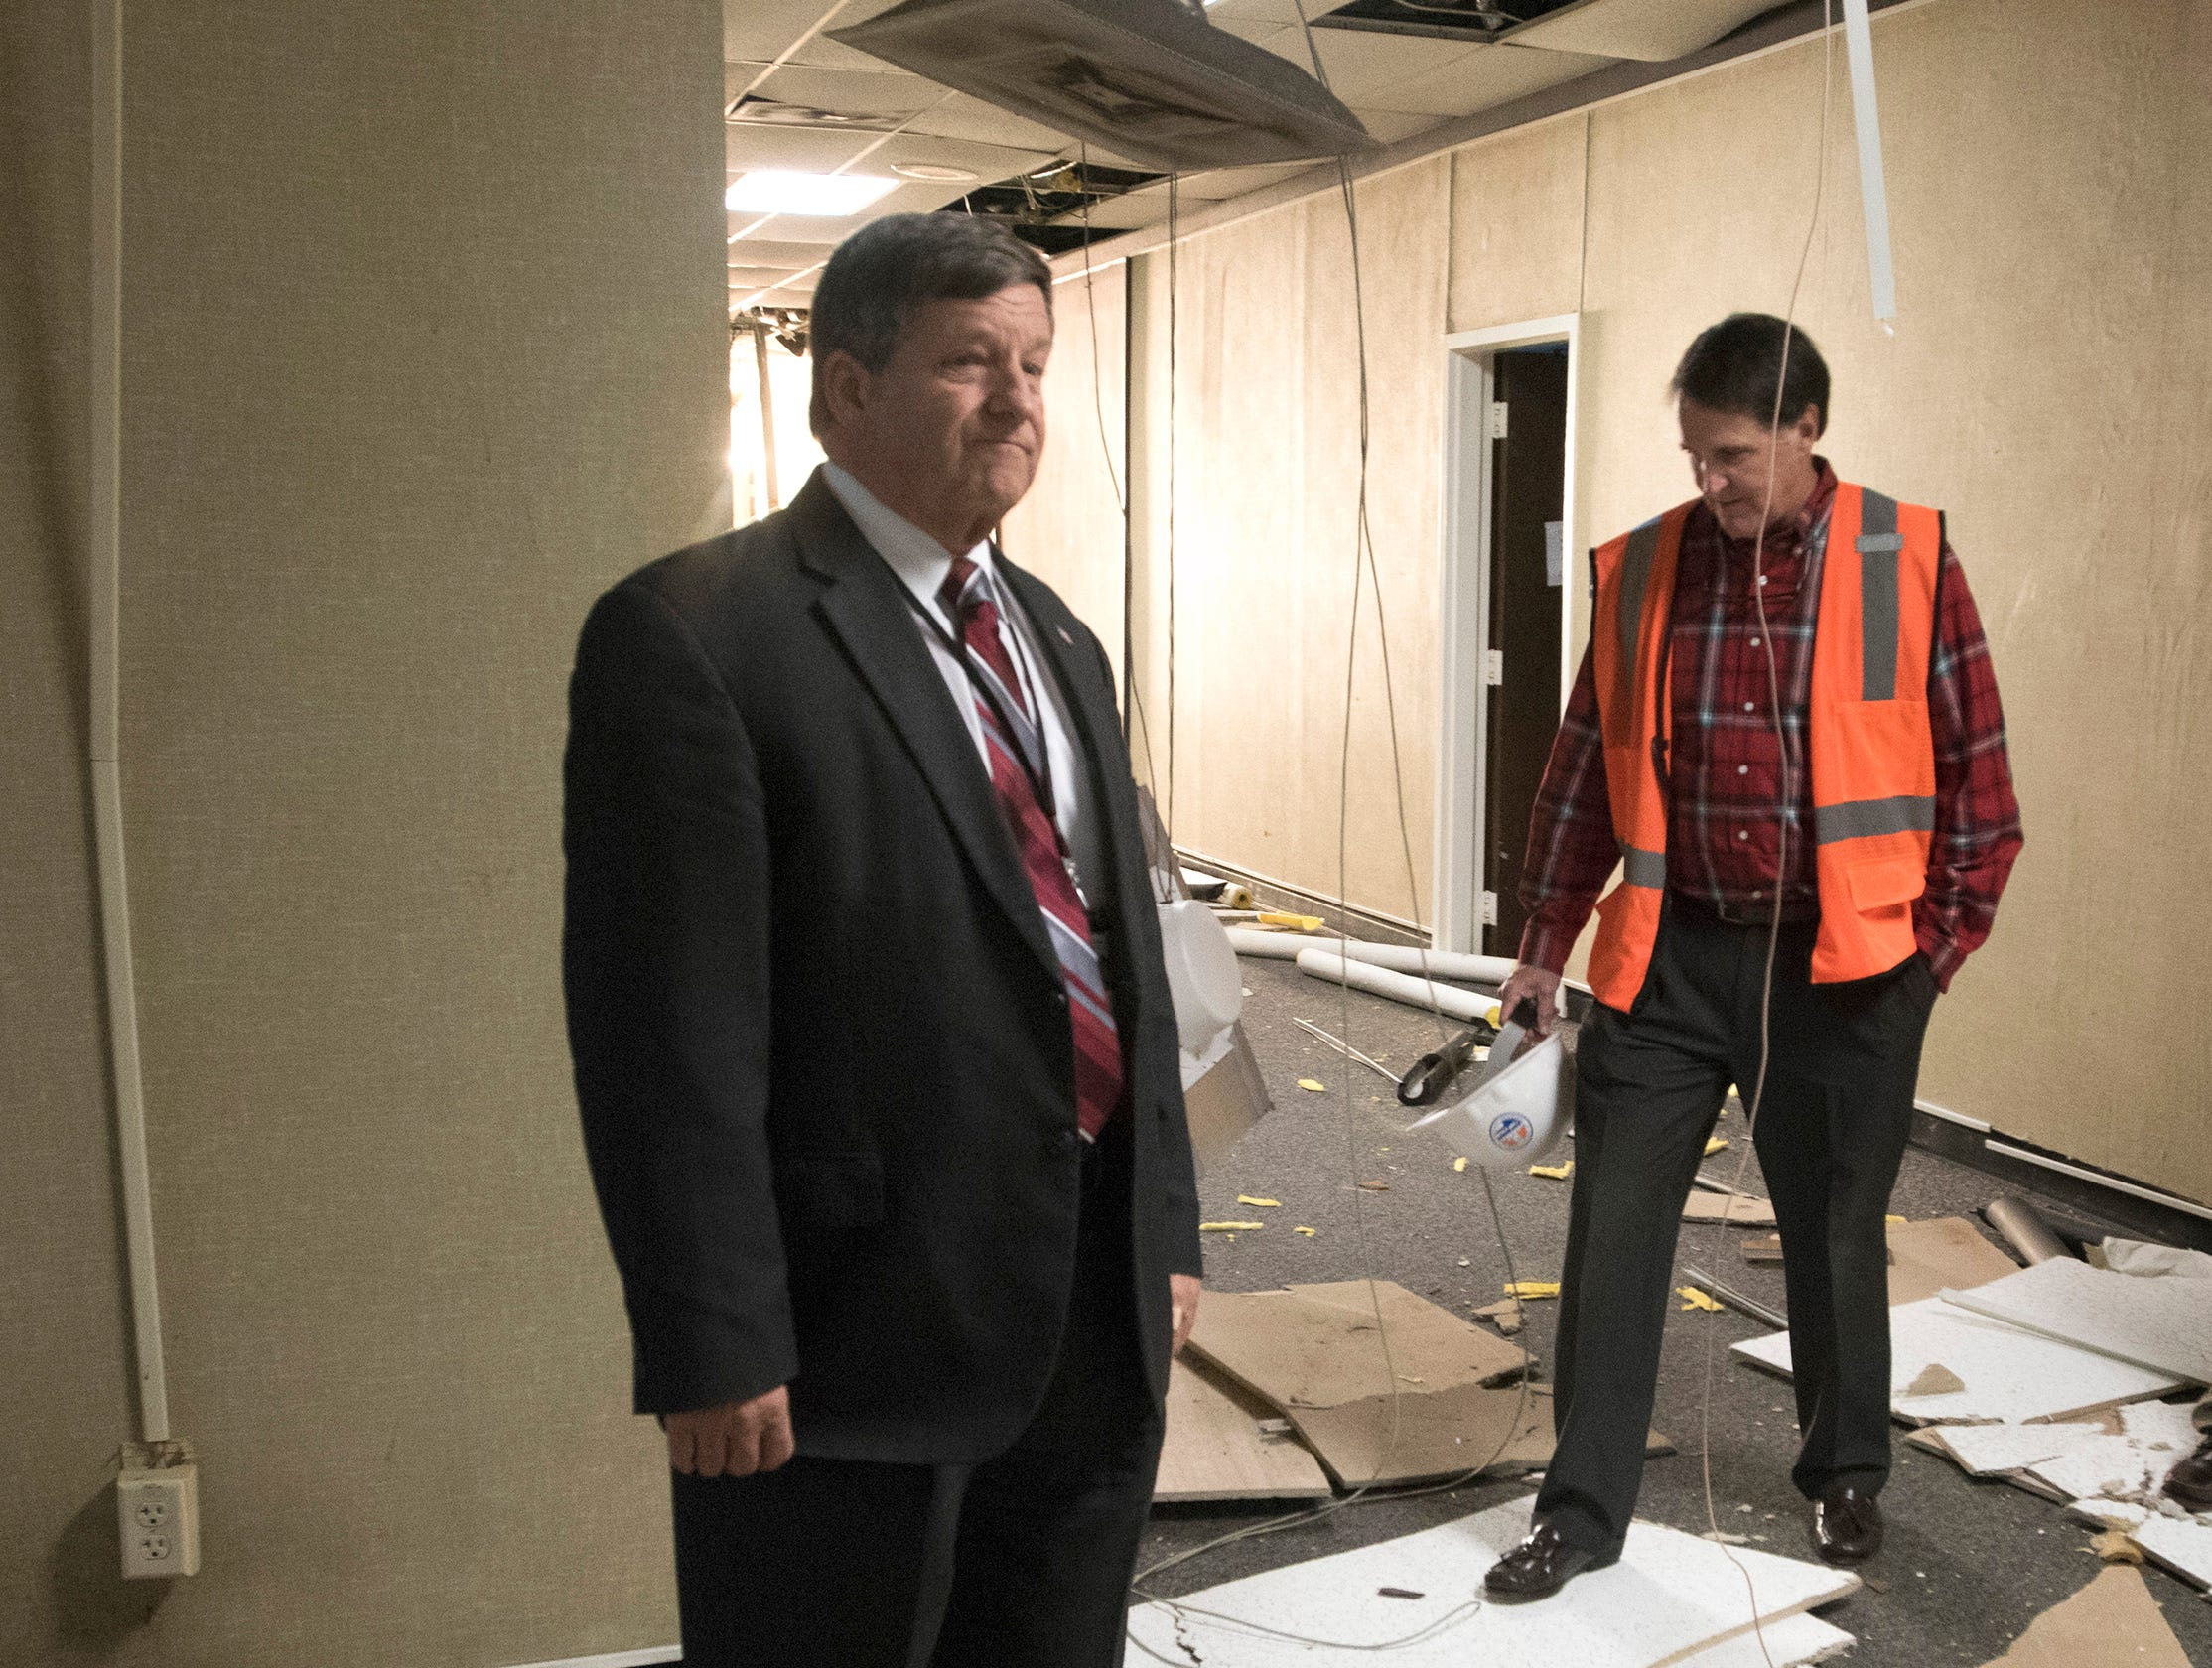 Escambia County School Superintendent,  Malcolm Thomas, and Developer, Ed Carson tour the old district headquarters building on Garden Street on Tuesday, Dec. 4, 2018. Carson and a group of developers want to build a 280-unit apartment complex on the school district site.